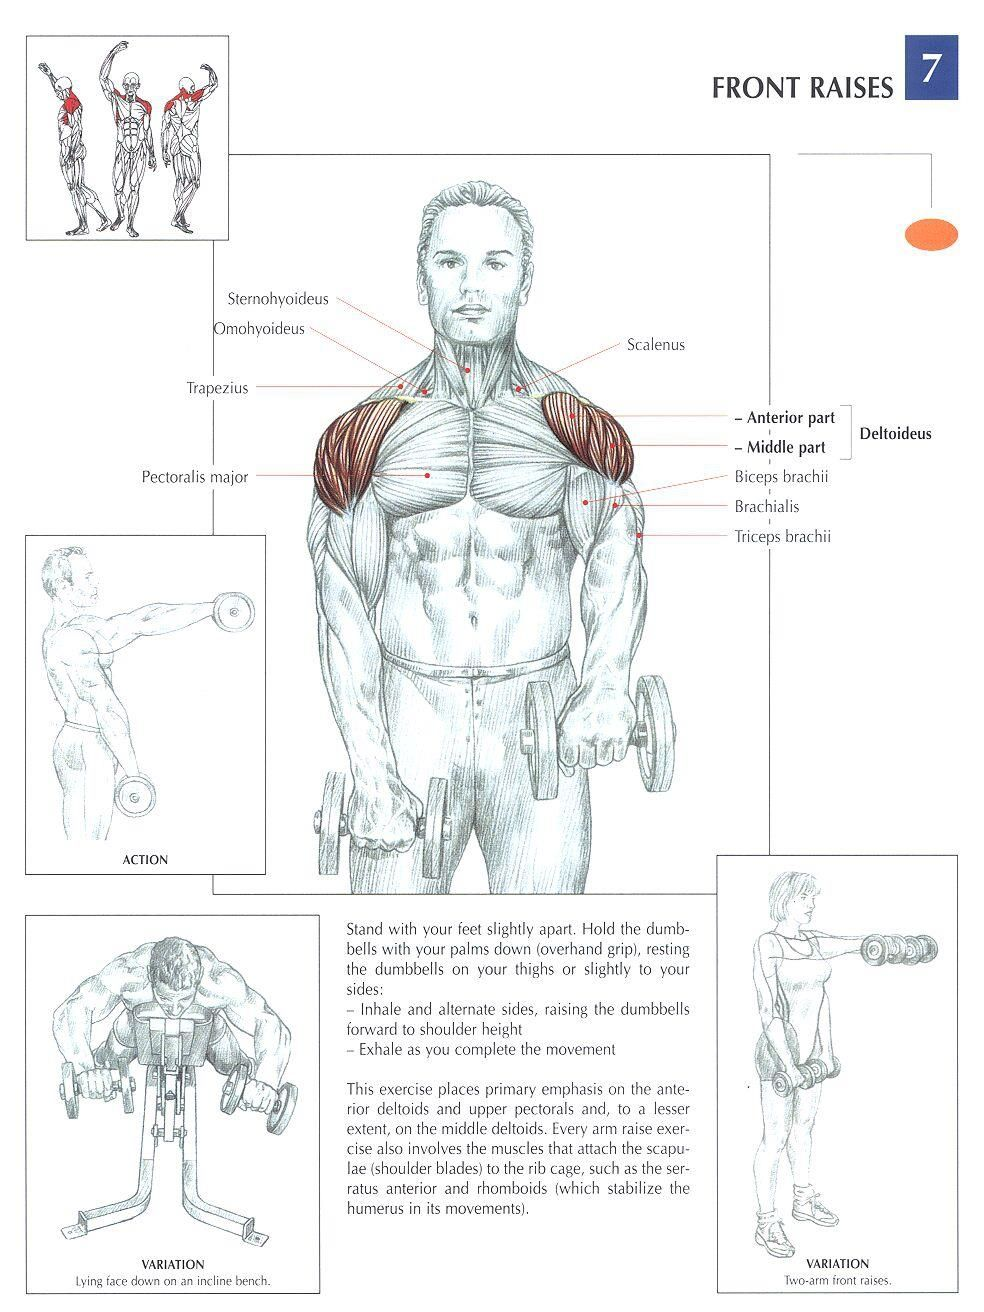 Dumbbell Front Raises | Workouts | Pinterest | Ejercicios, Rutinas y ...